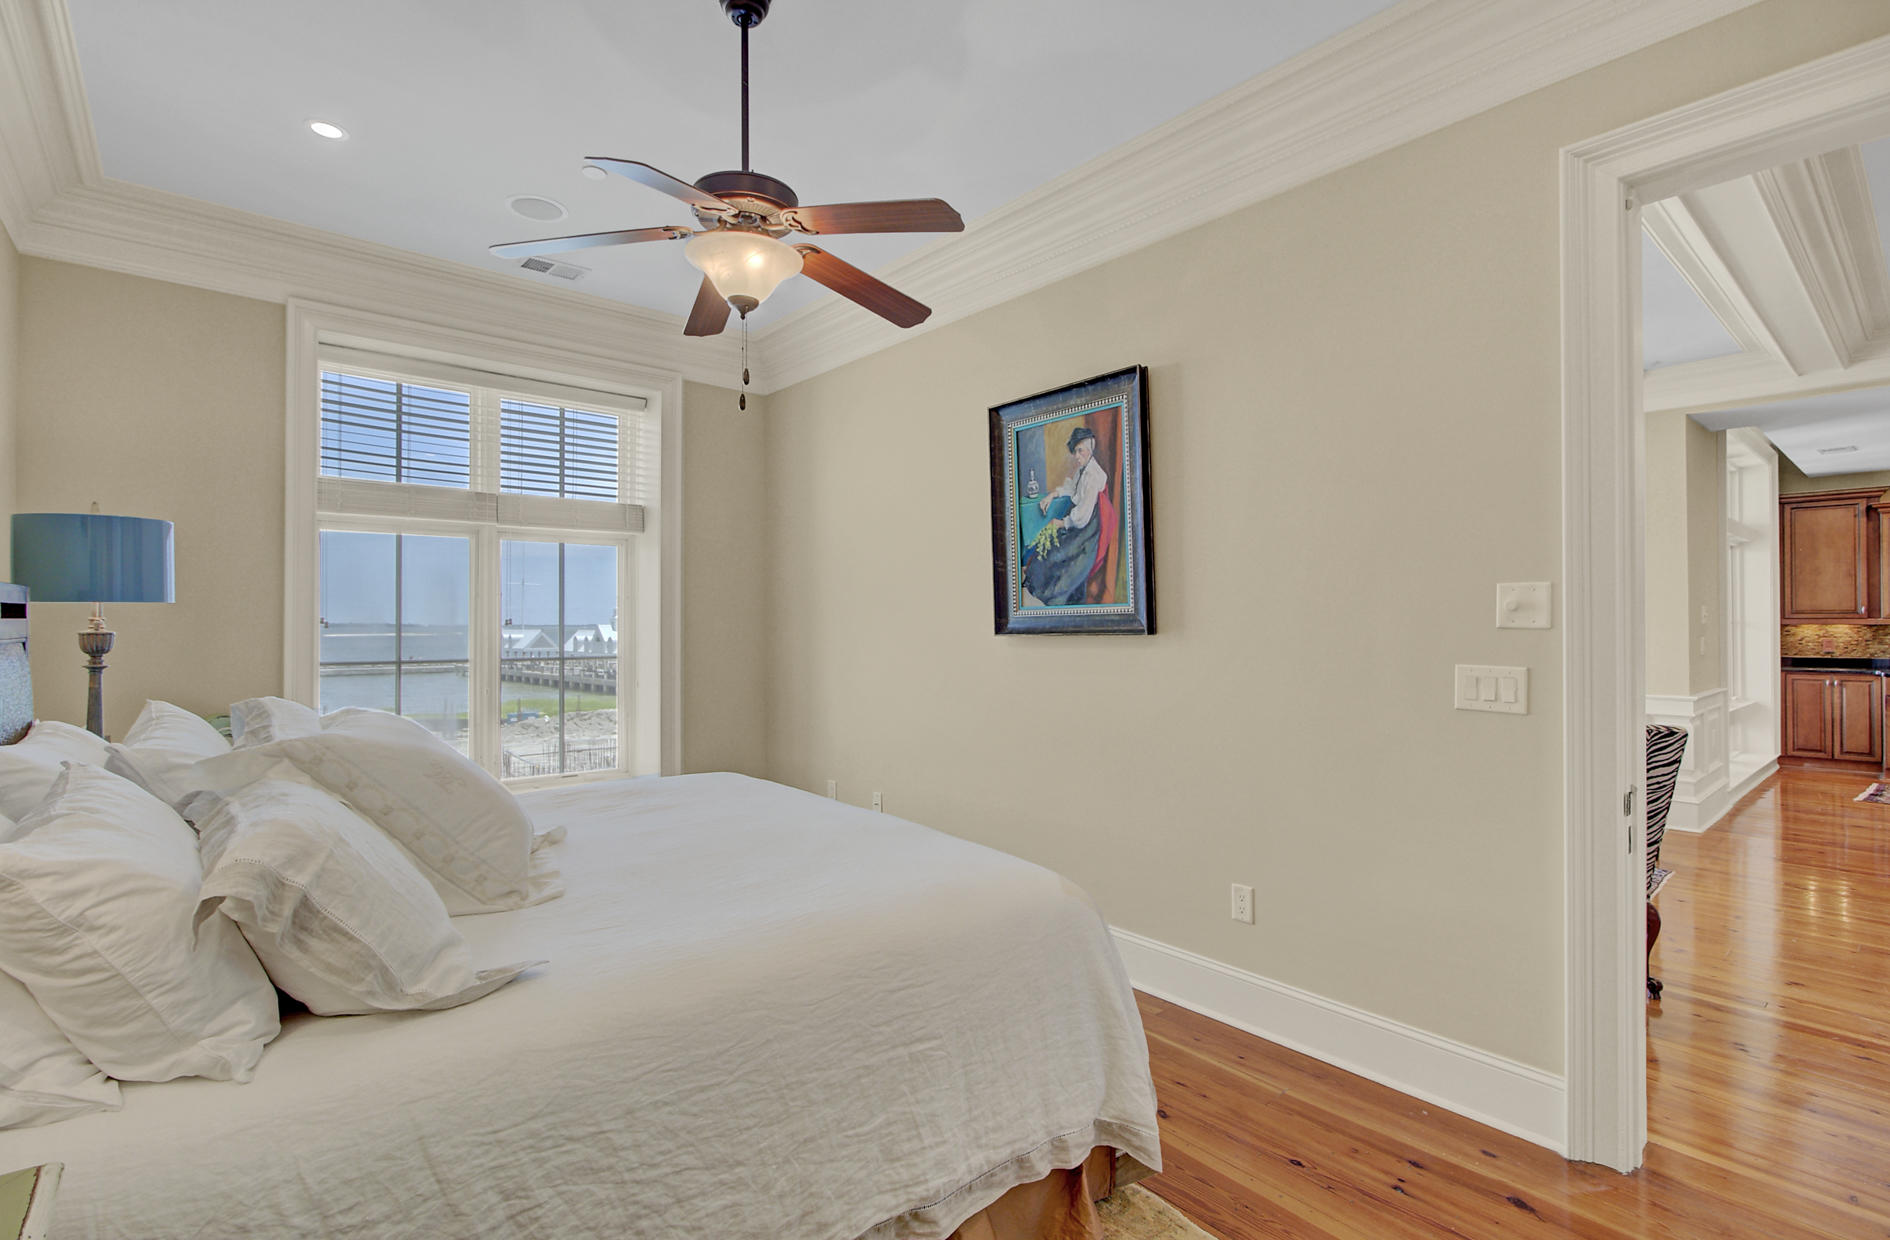 French Quarter Homes For Sale - 175 Concord, Charleston, SC - 0